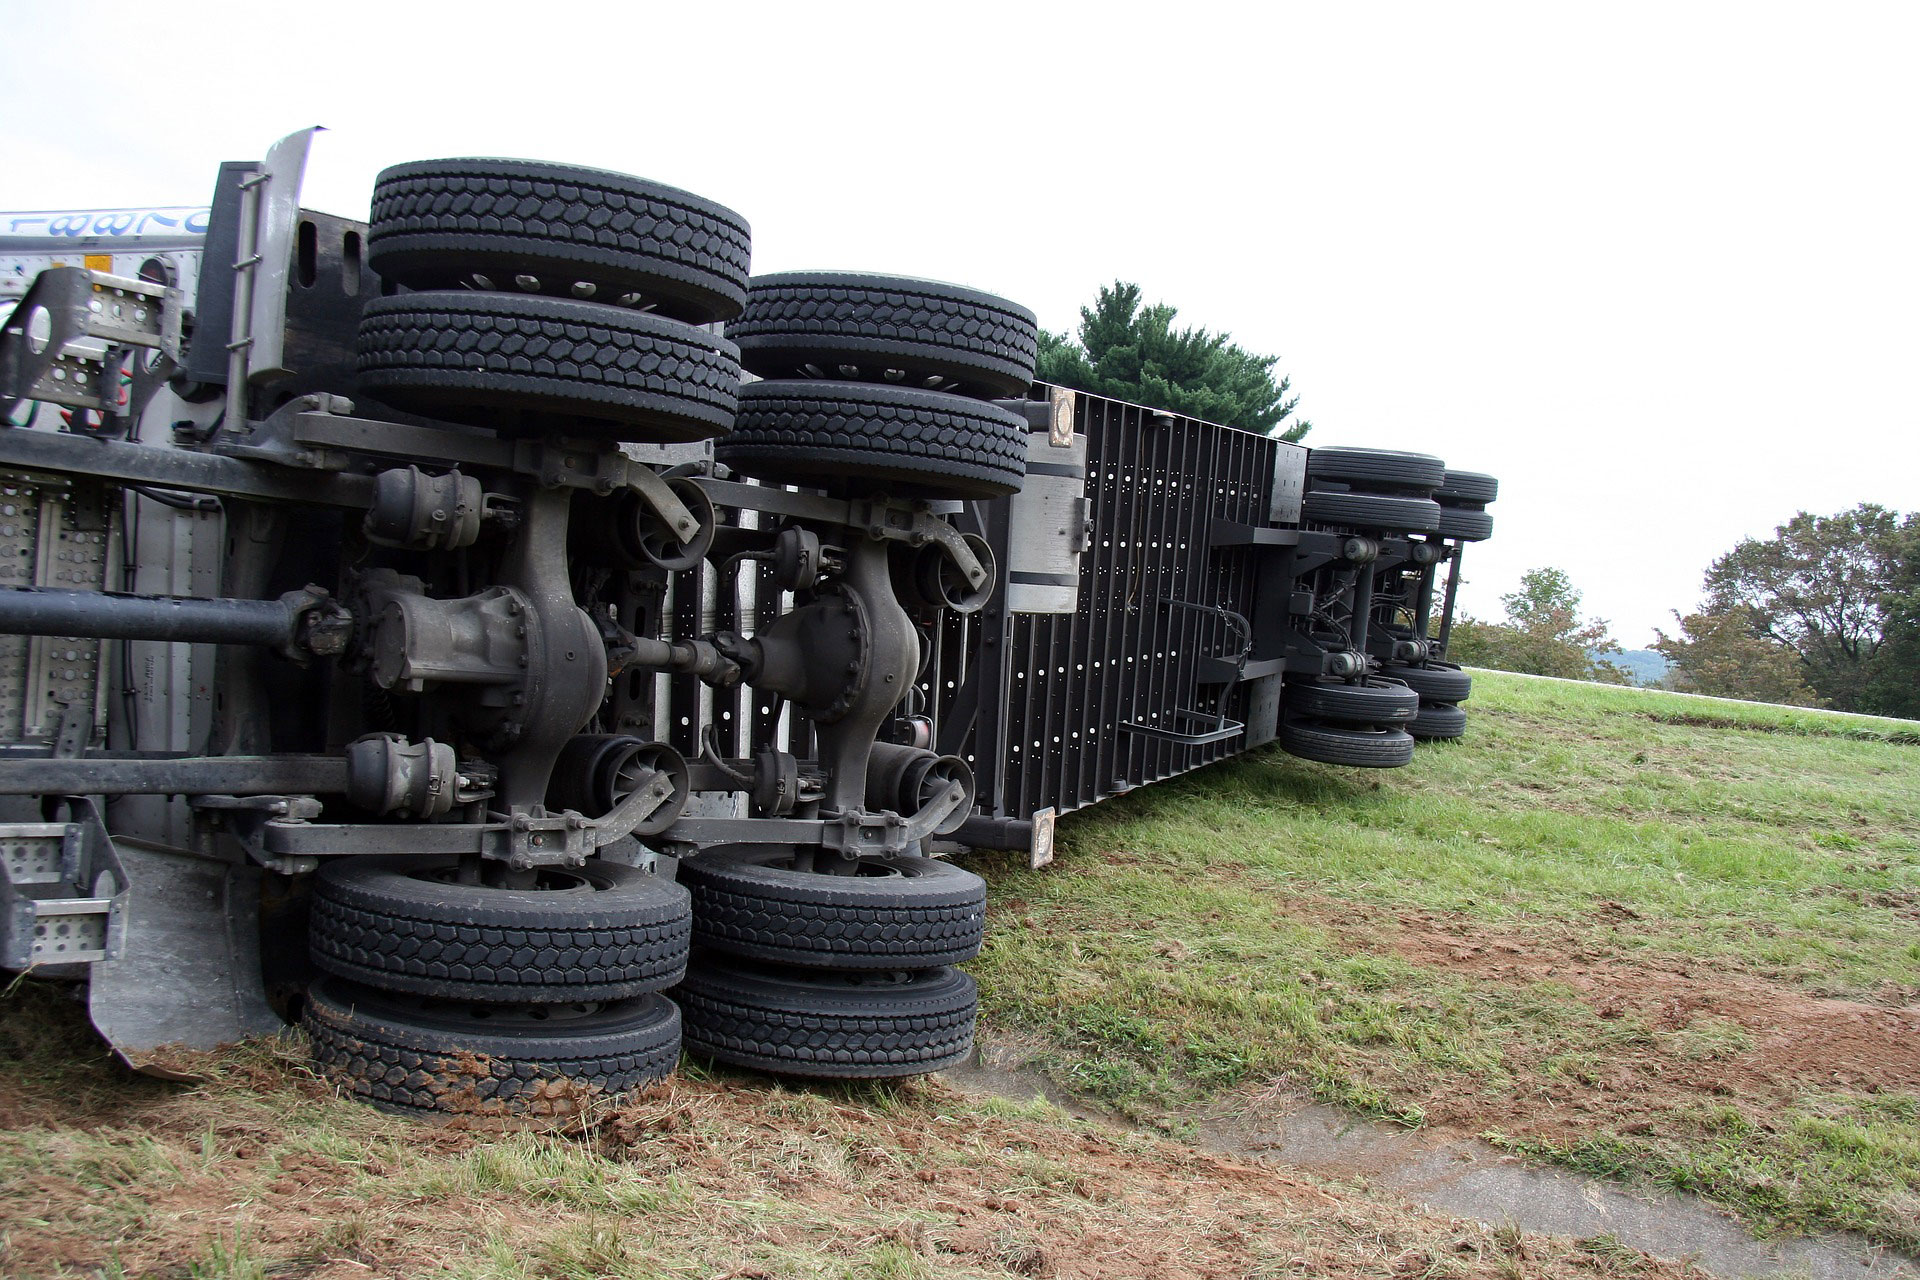 semi-truck-or-commercial-vehicle-accident